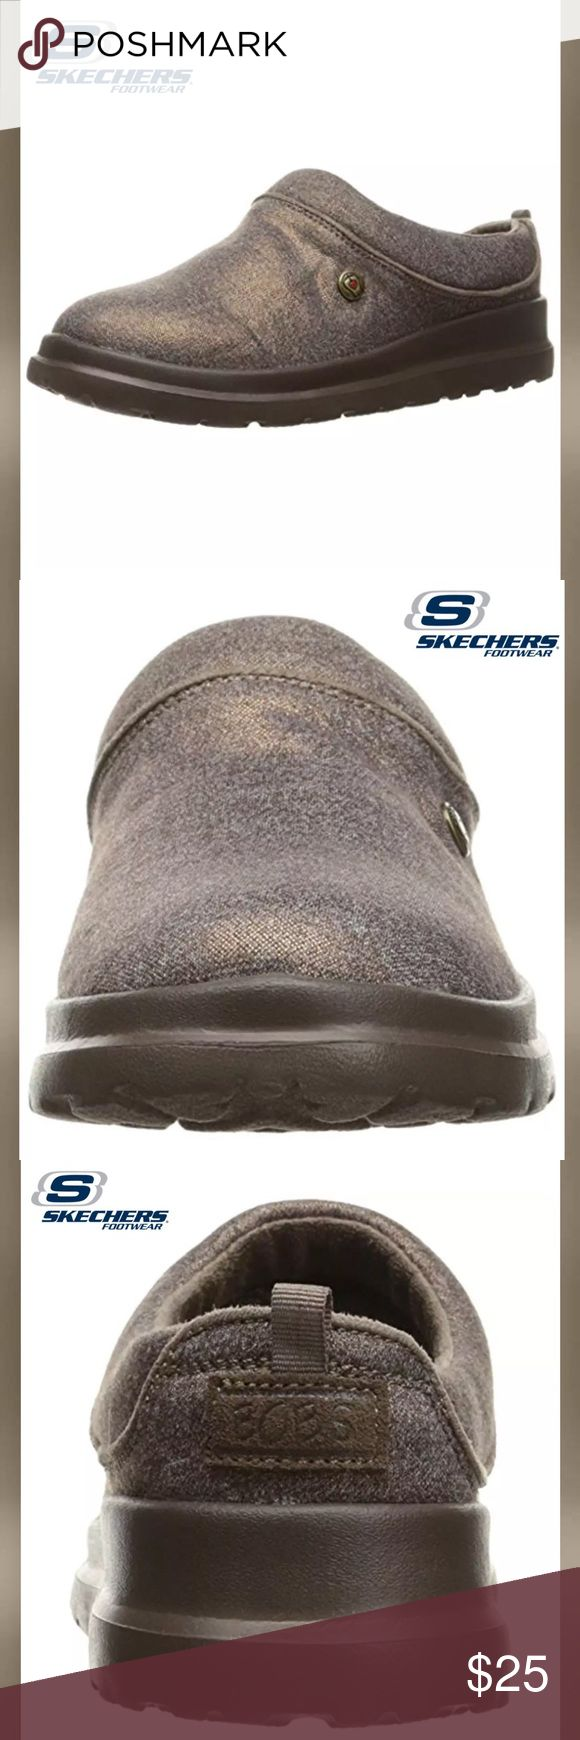 SKETCHERS 'Bobs' Bronze Clog Slippers Please See Above Picture For Detailed Description Sketchers Shoes Slippers